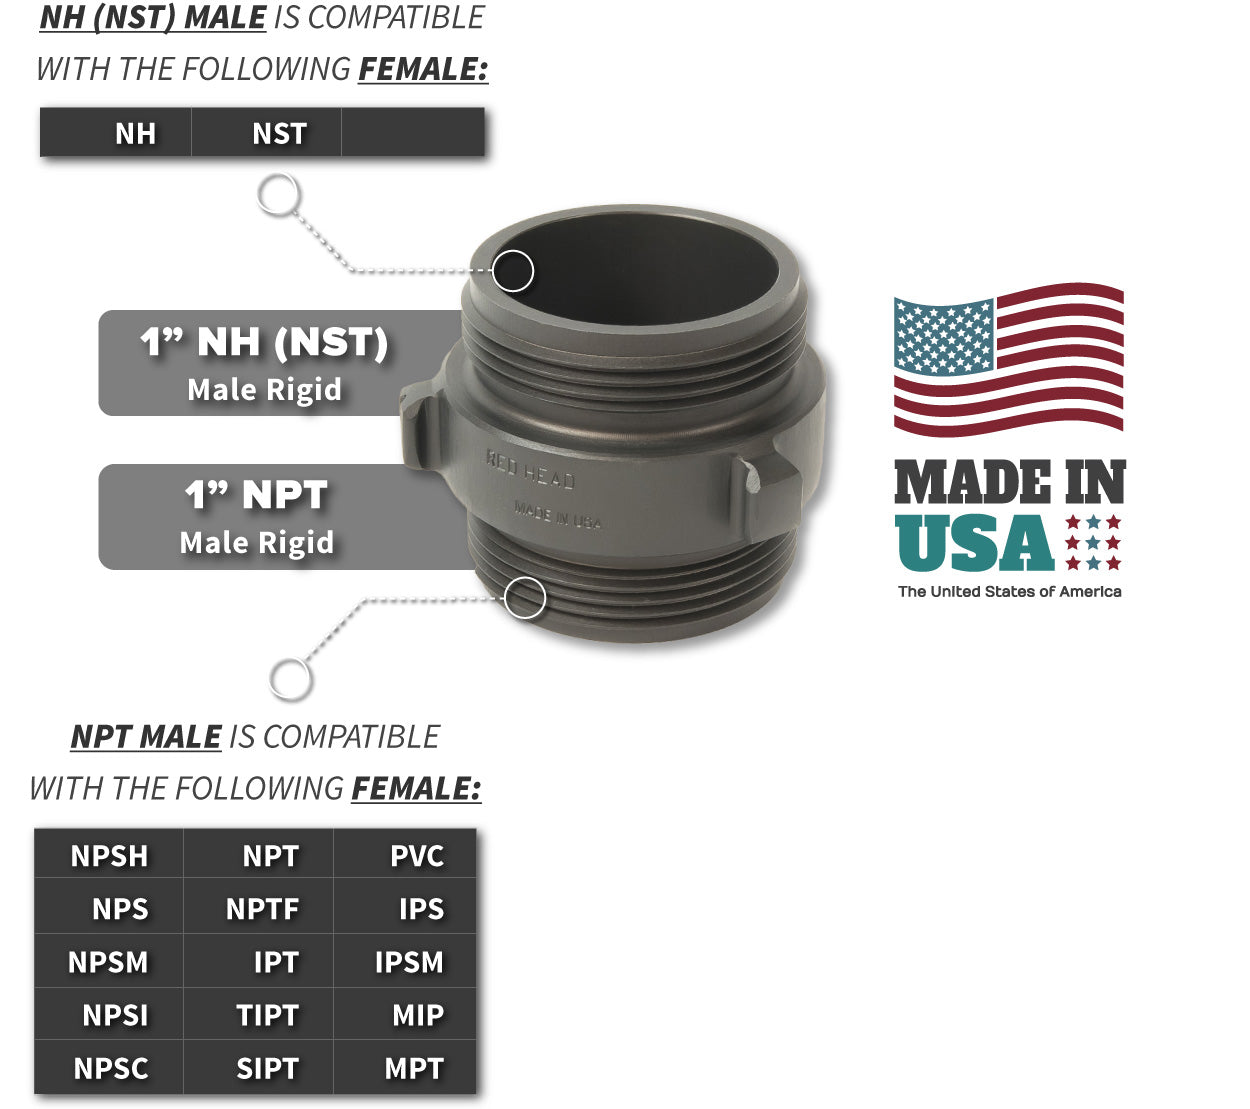 1 Inch NH-NST Male x 1 Inch NPT Male Compatibility Thread Chart